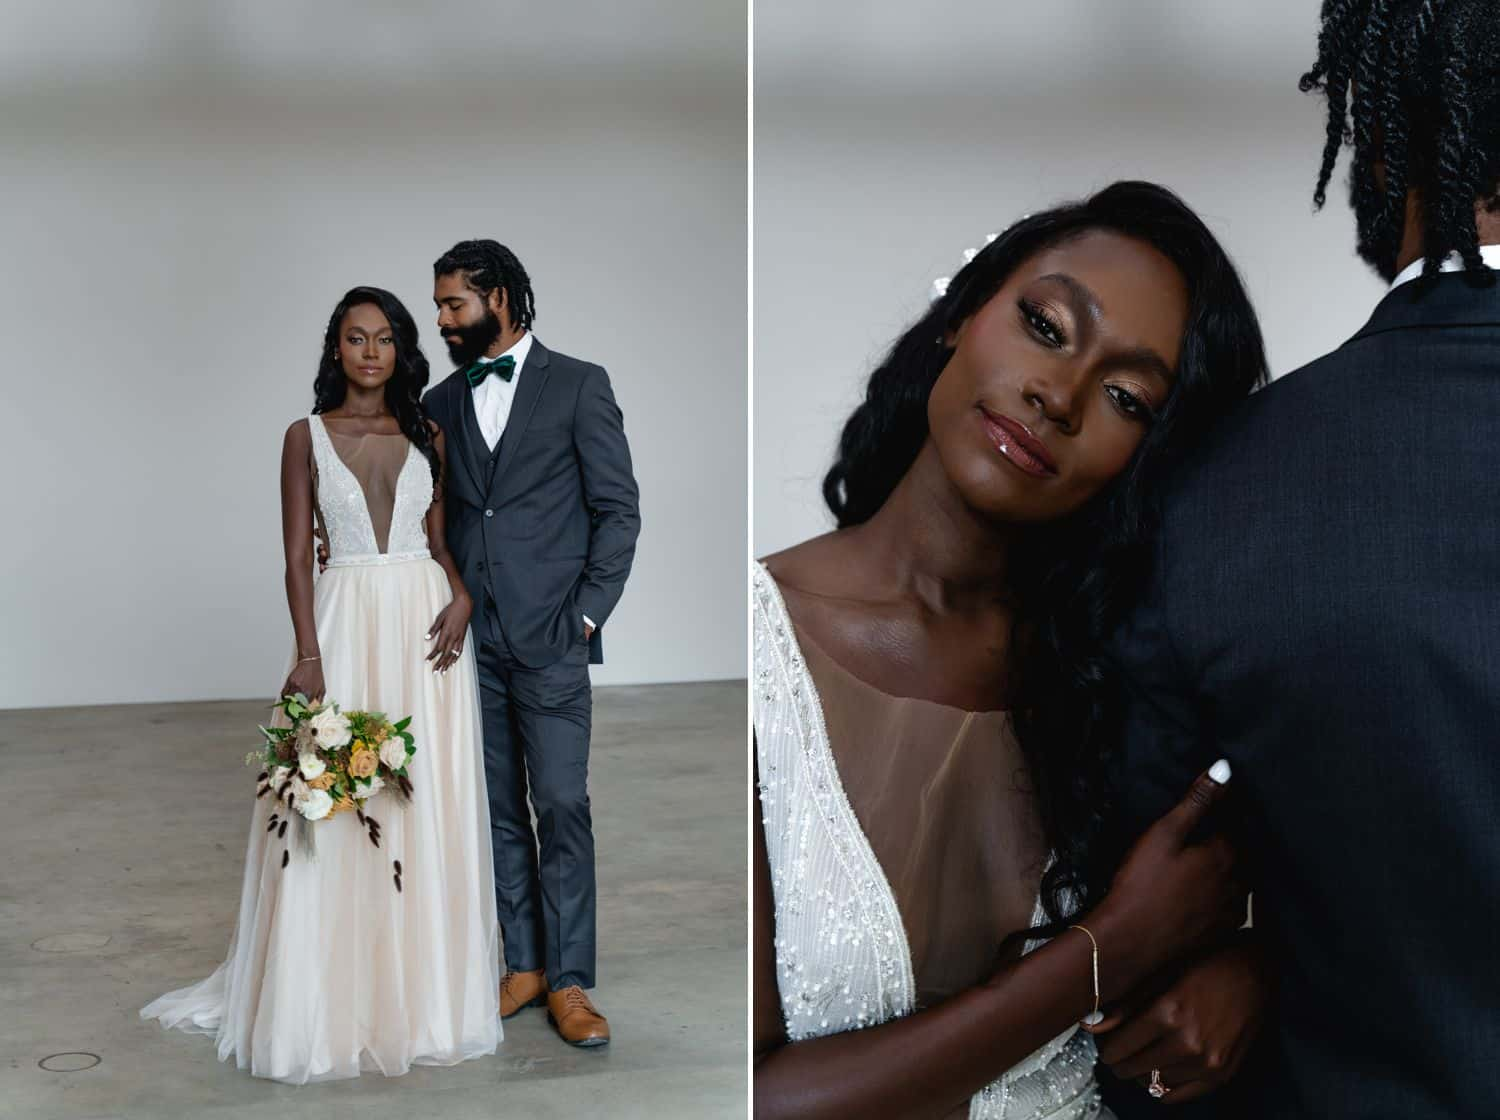 A Black bride and groom stand in a dimly lit studio in front of a white backdrop.